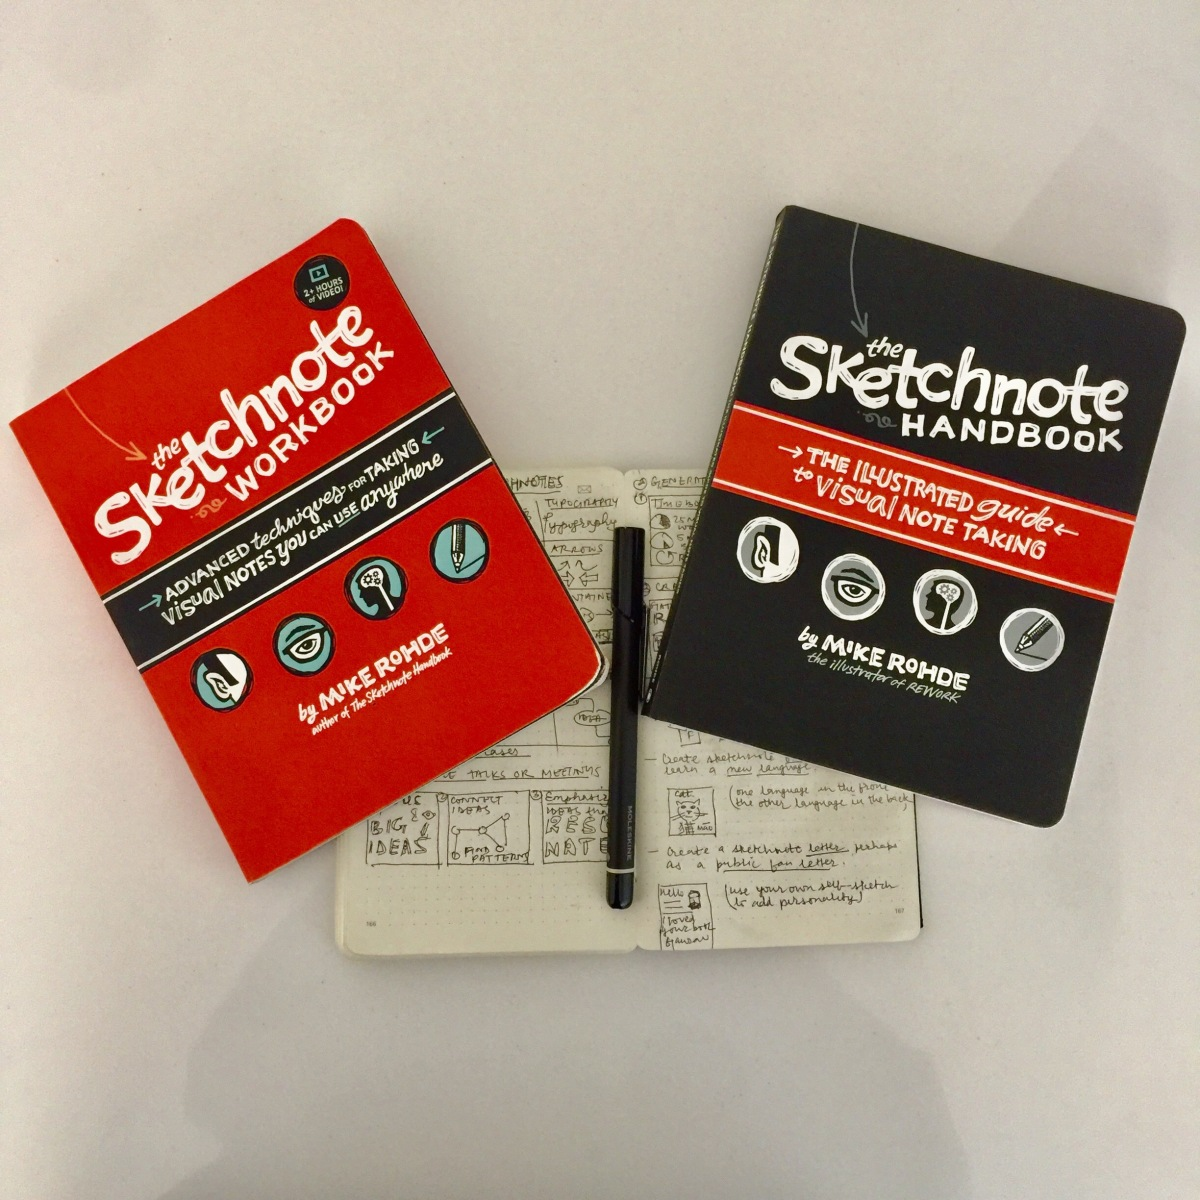 Seven Lessons on Sketching and Seven Ideas For Sketchnoting From Mike Rohde's Books 'Sketchnote Handbook' and 'Sketchnote Workbook'